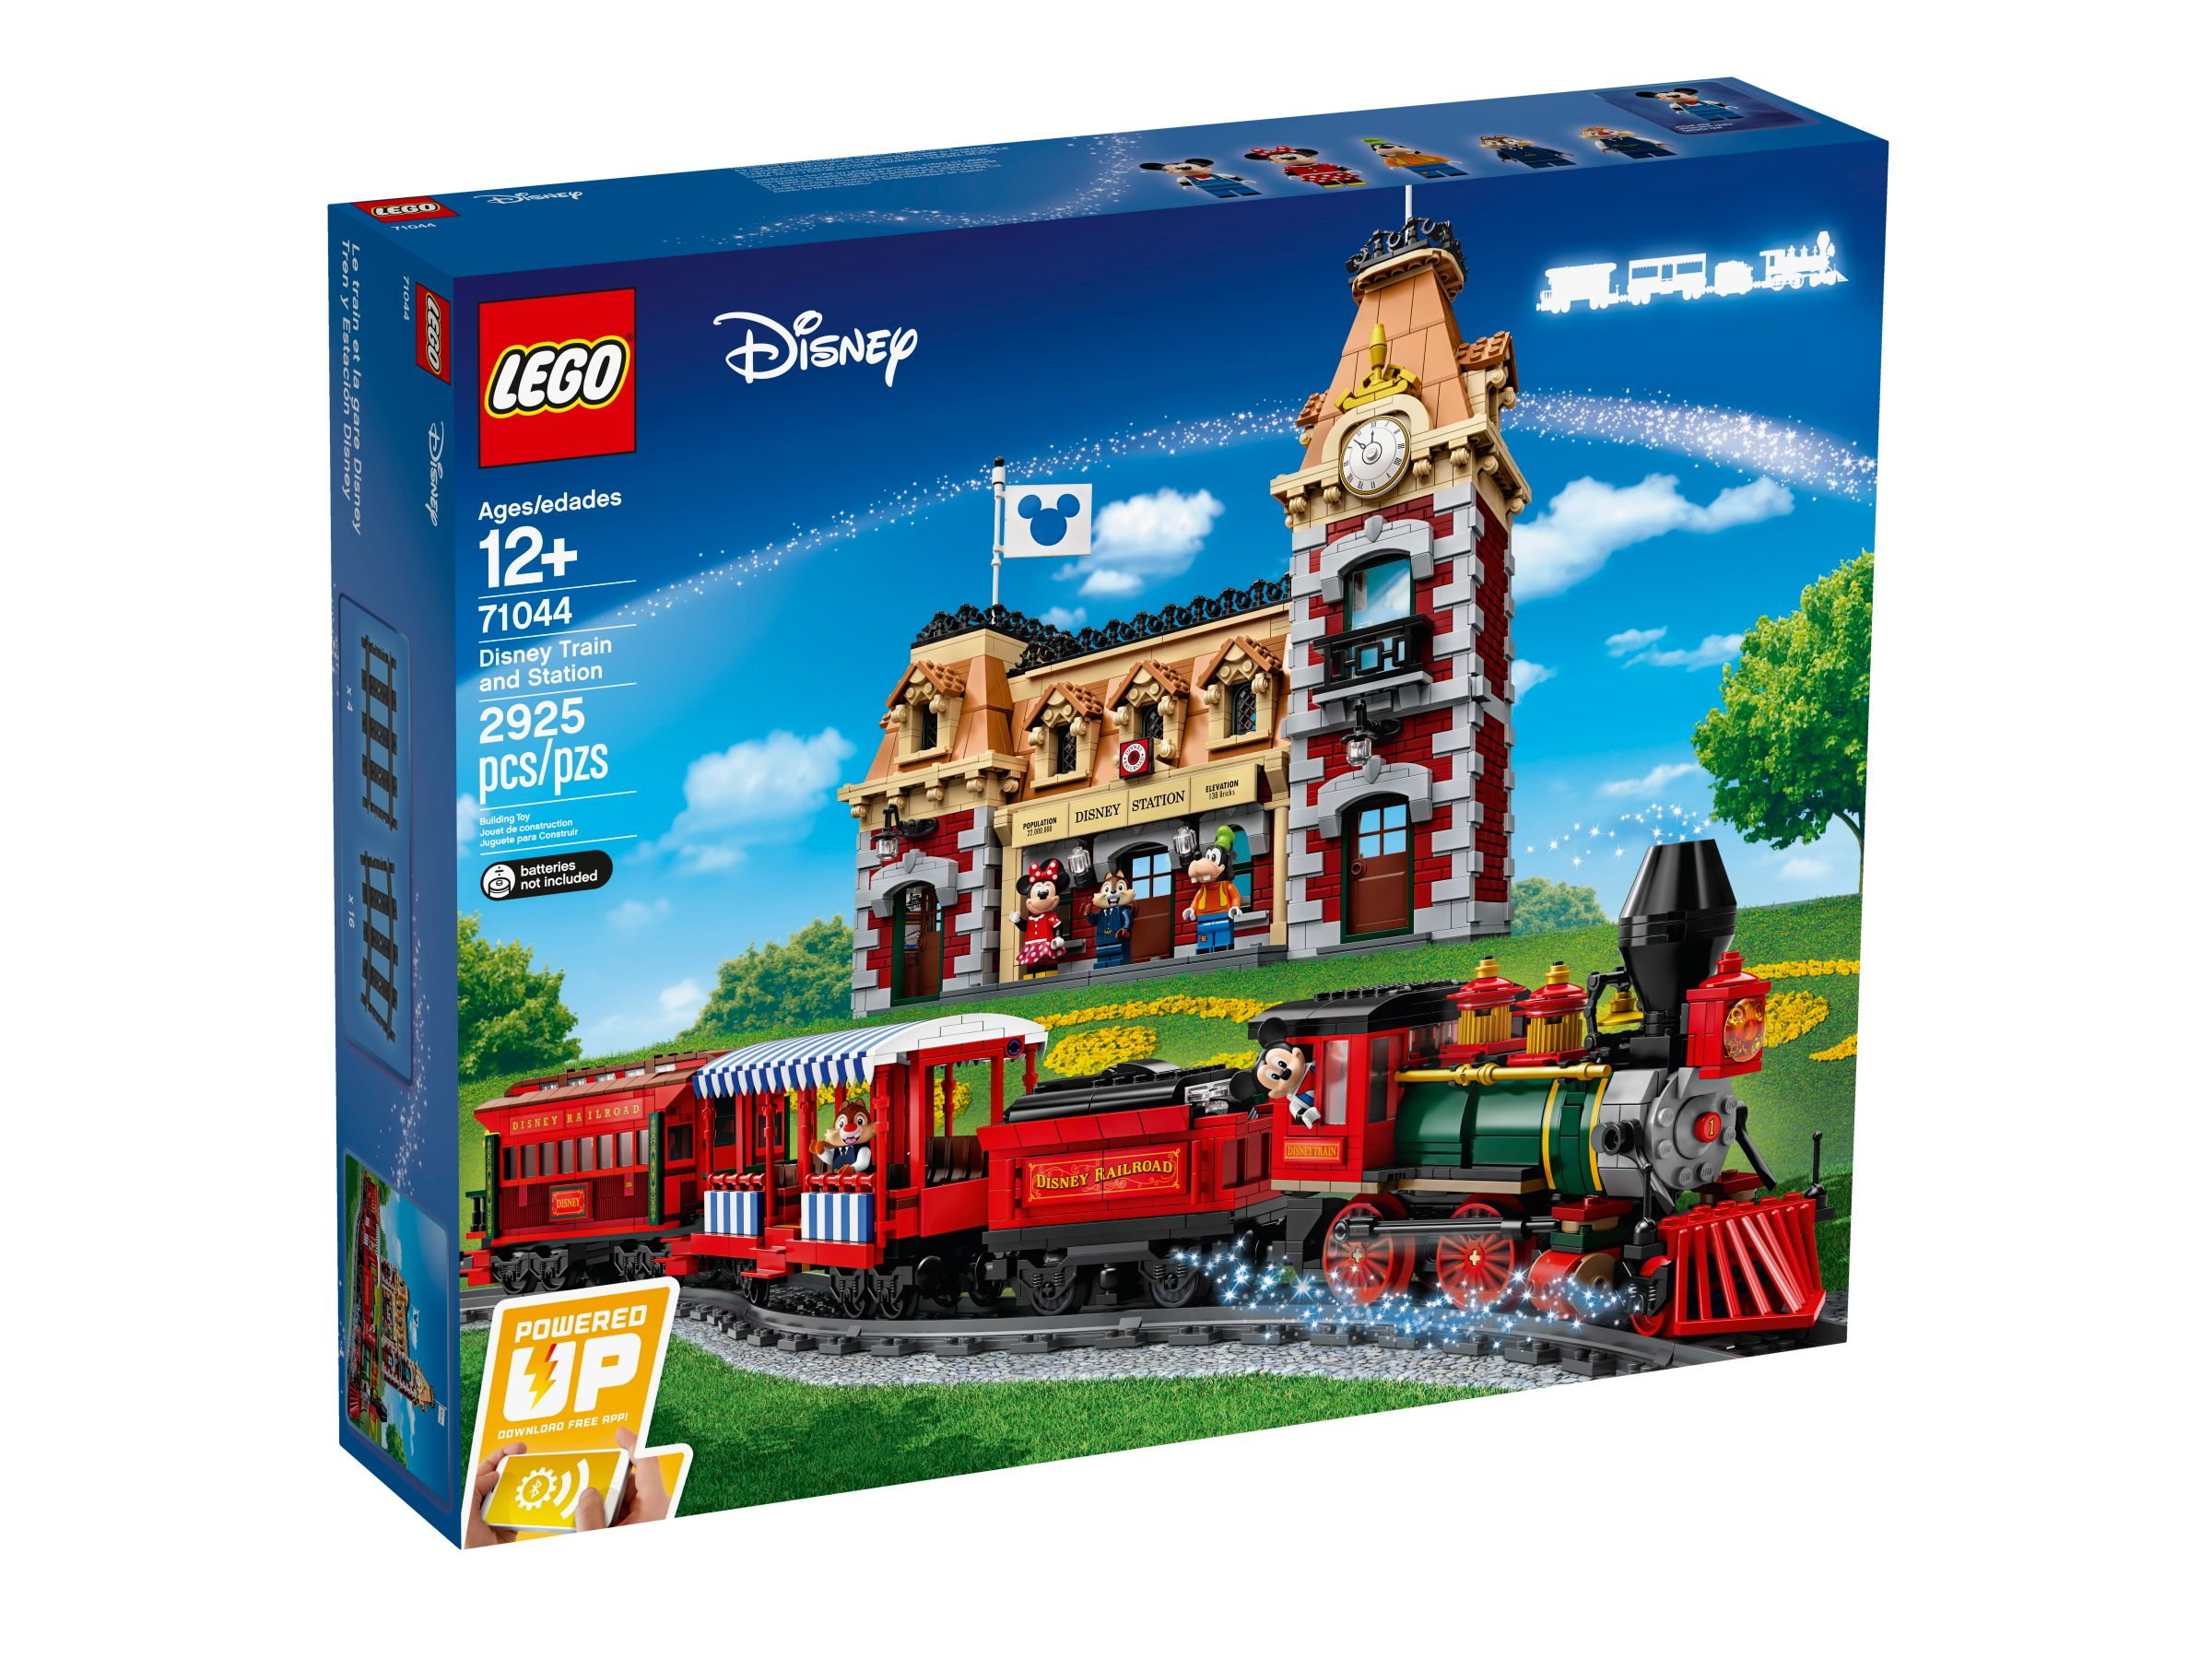 LEGO Advanced Models 71044 Disney Zug mit Bahnhof LEGO_71044_alt1.jpg